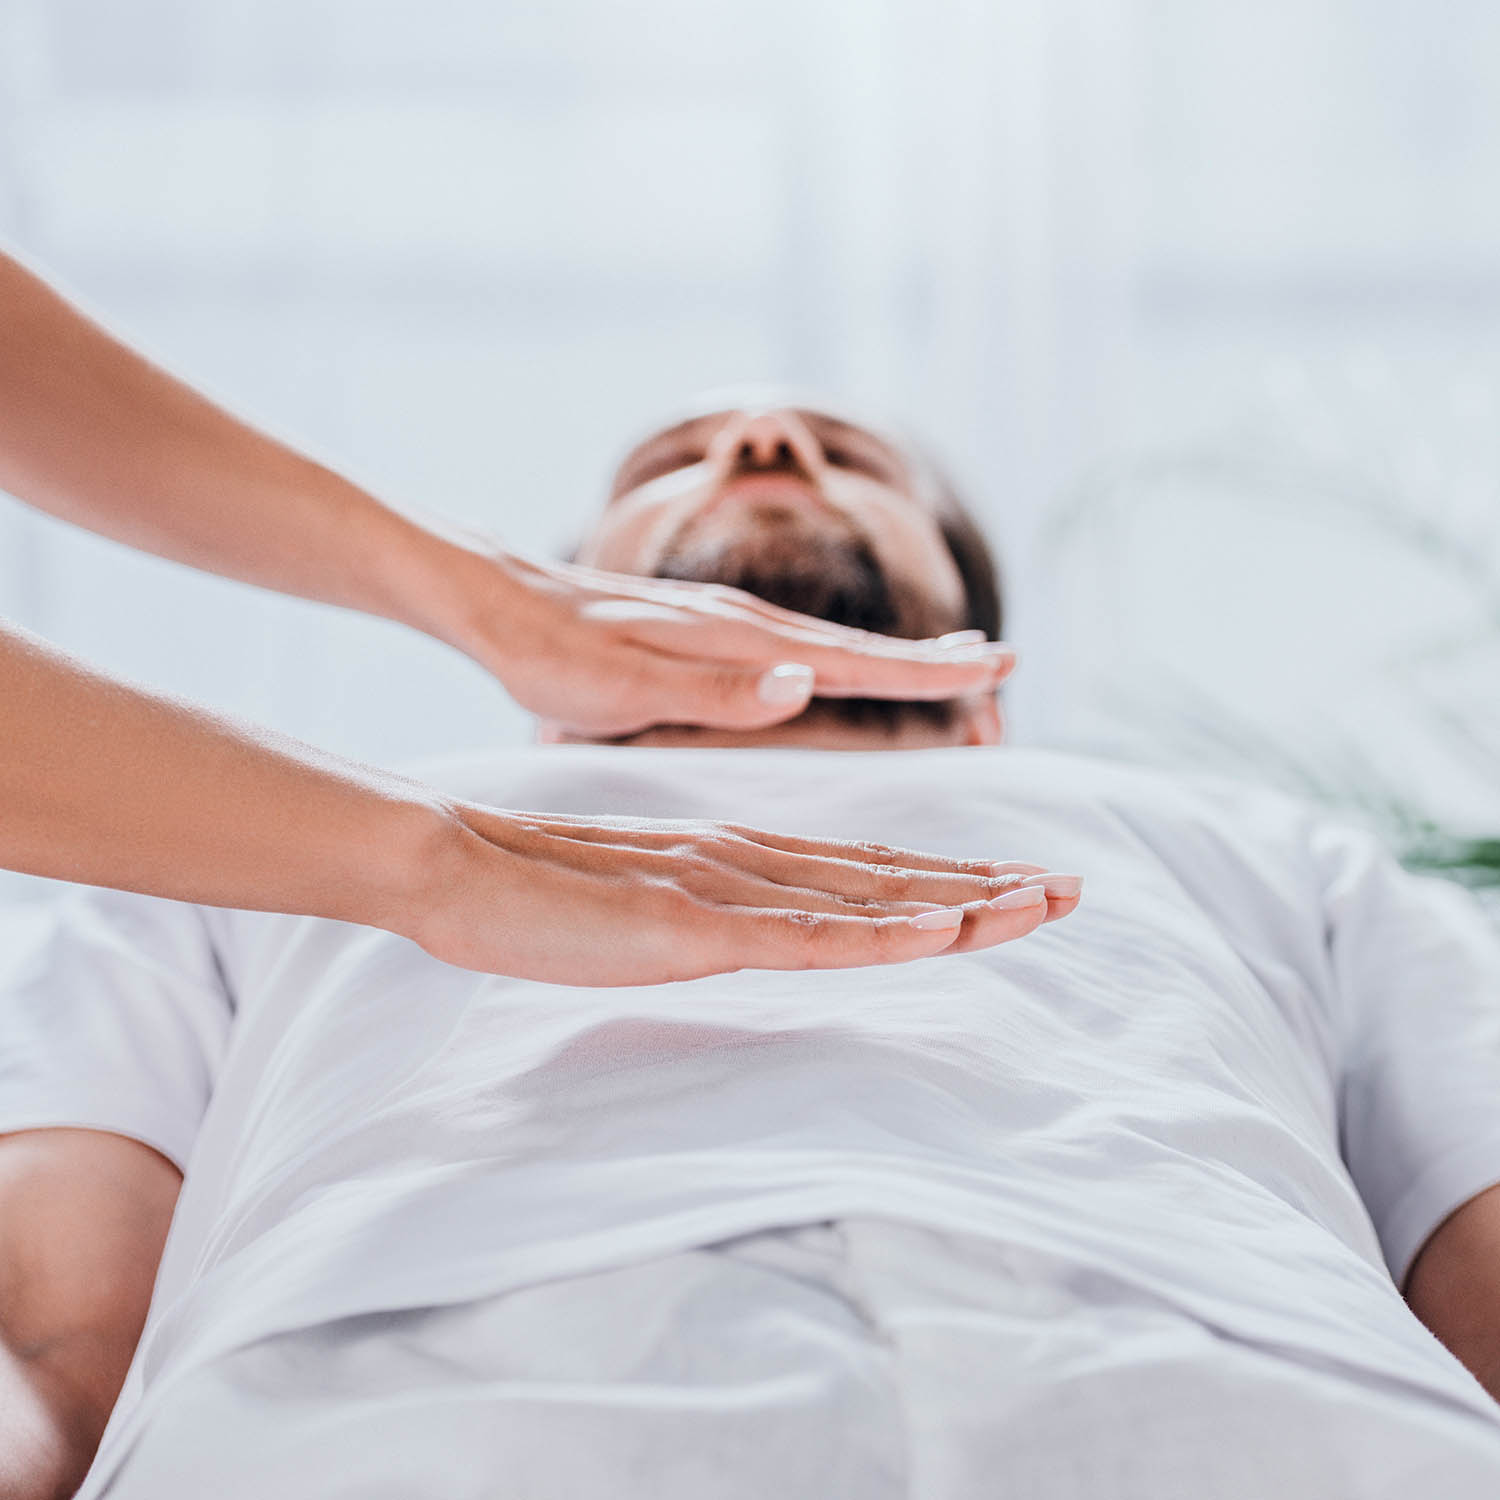 A man with a Reiki practitioner's hands hovering above him.